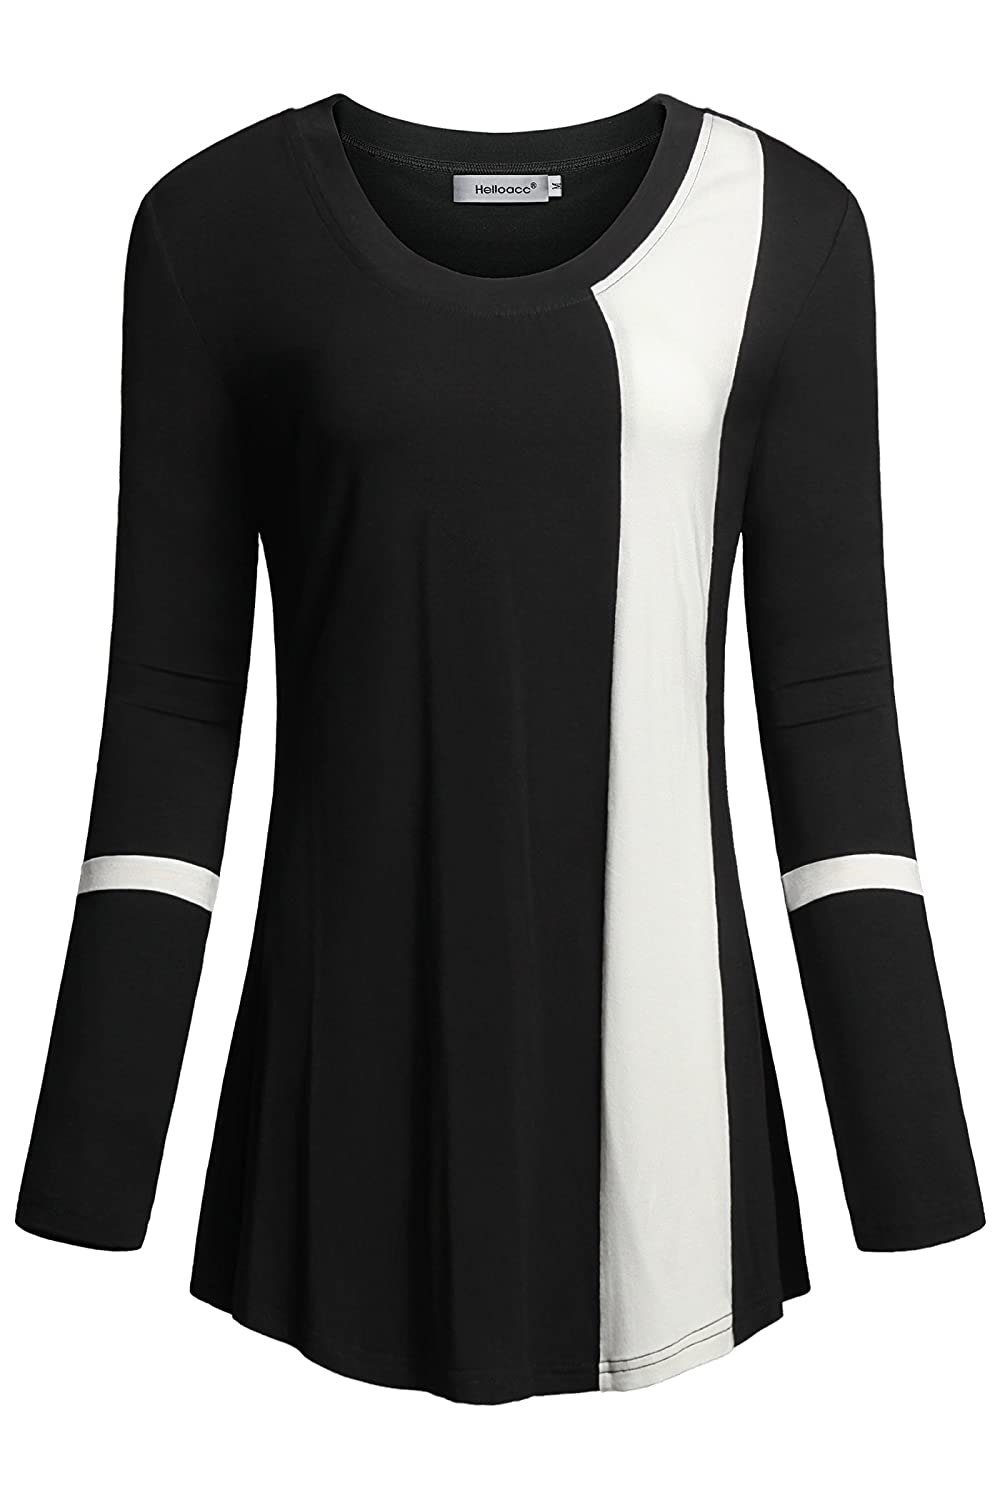 271fb3c5d0bc8 Features Round Neck Scoop Neck Long Sleeve Color Block Fashion and Trendy Original  Design Modern Chic Regular Fit Tunic Top Flowy Tunic Top Spring Summer ...